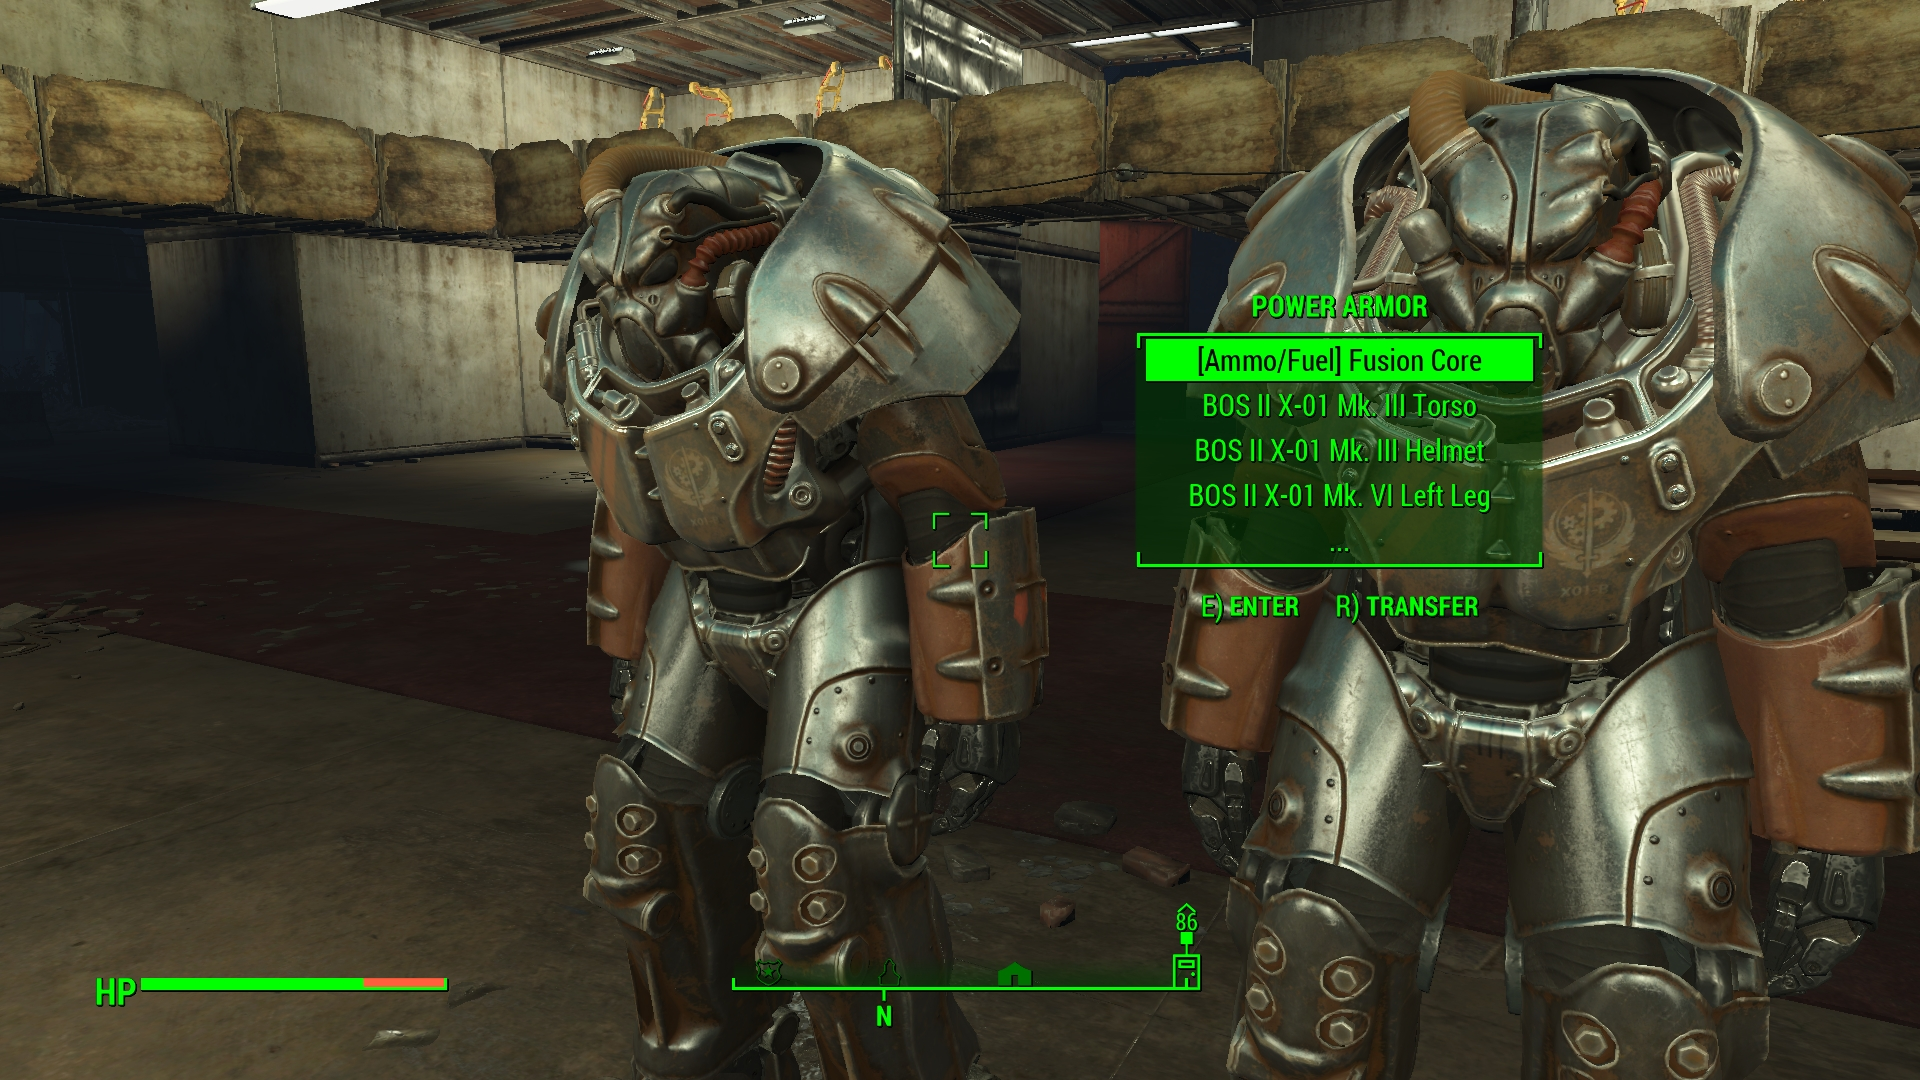 Standalone Brotherhood Of Steel X 01 Power Armor Paint At Fallout